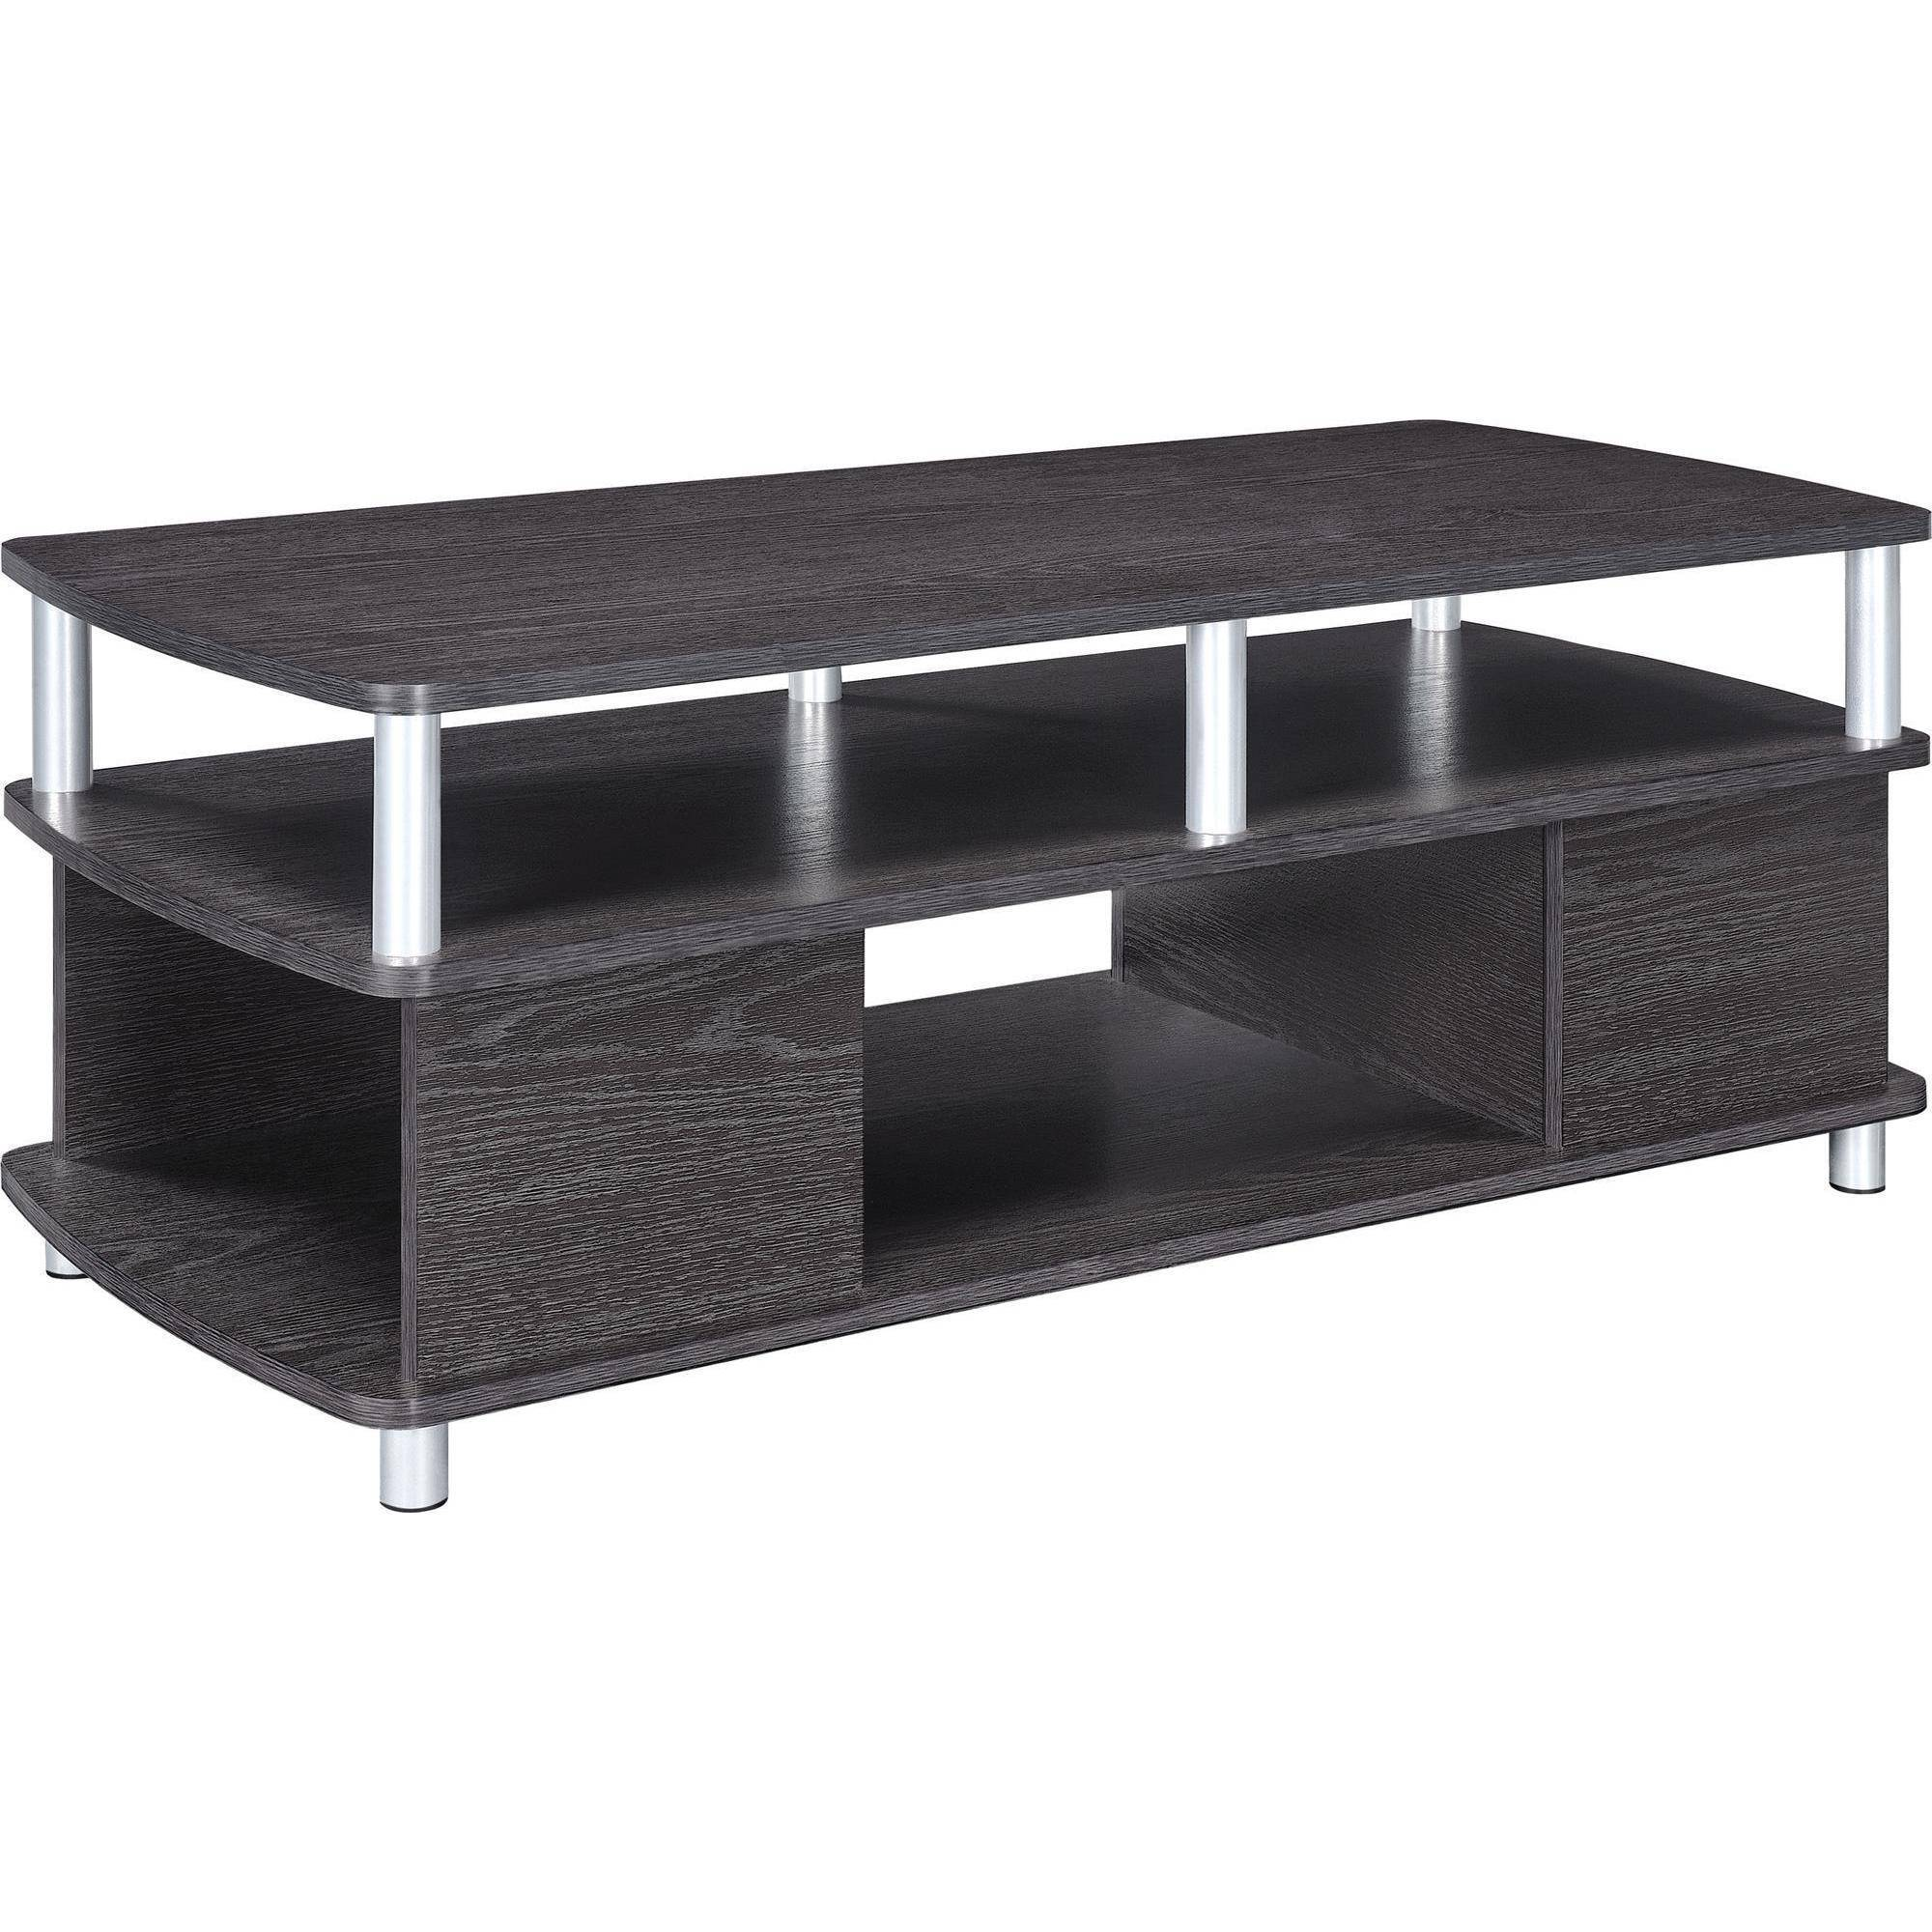 Ameriwood Home Carson Coffee Table, Espresso/Silver   Walmart.com